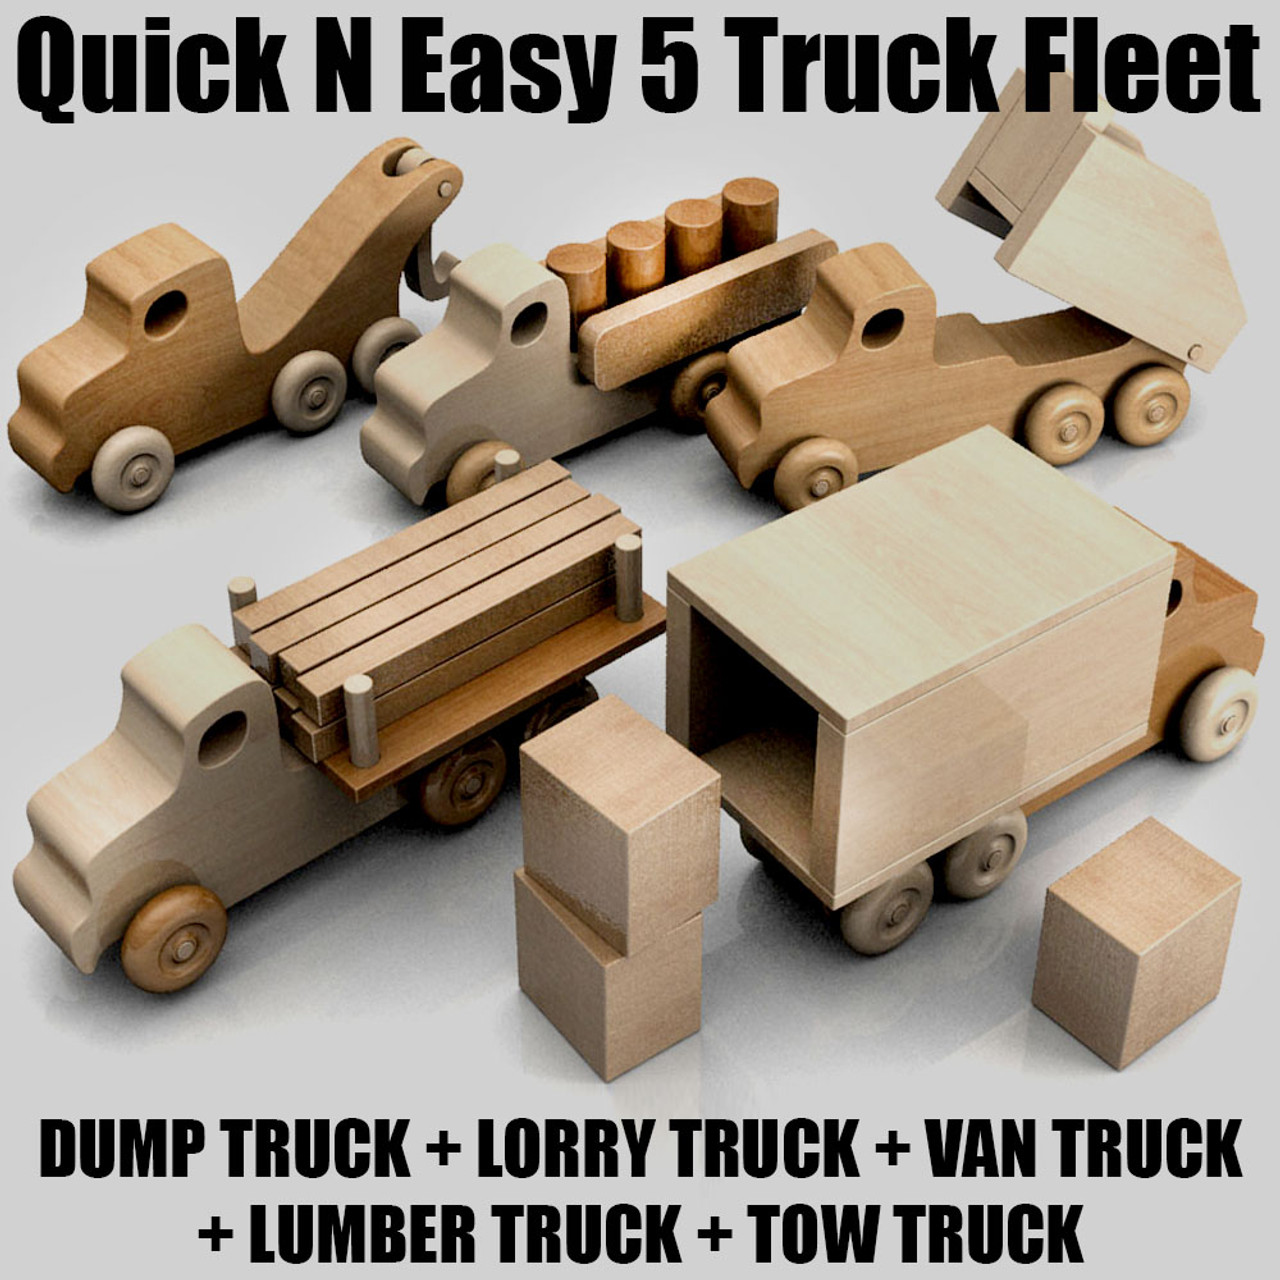 quick & easy 5 truck fleet wood toy plans (pdf download)